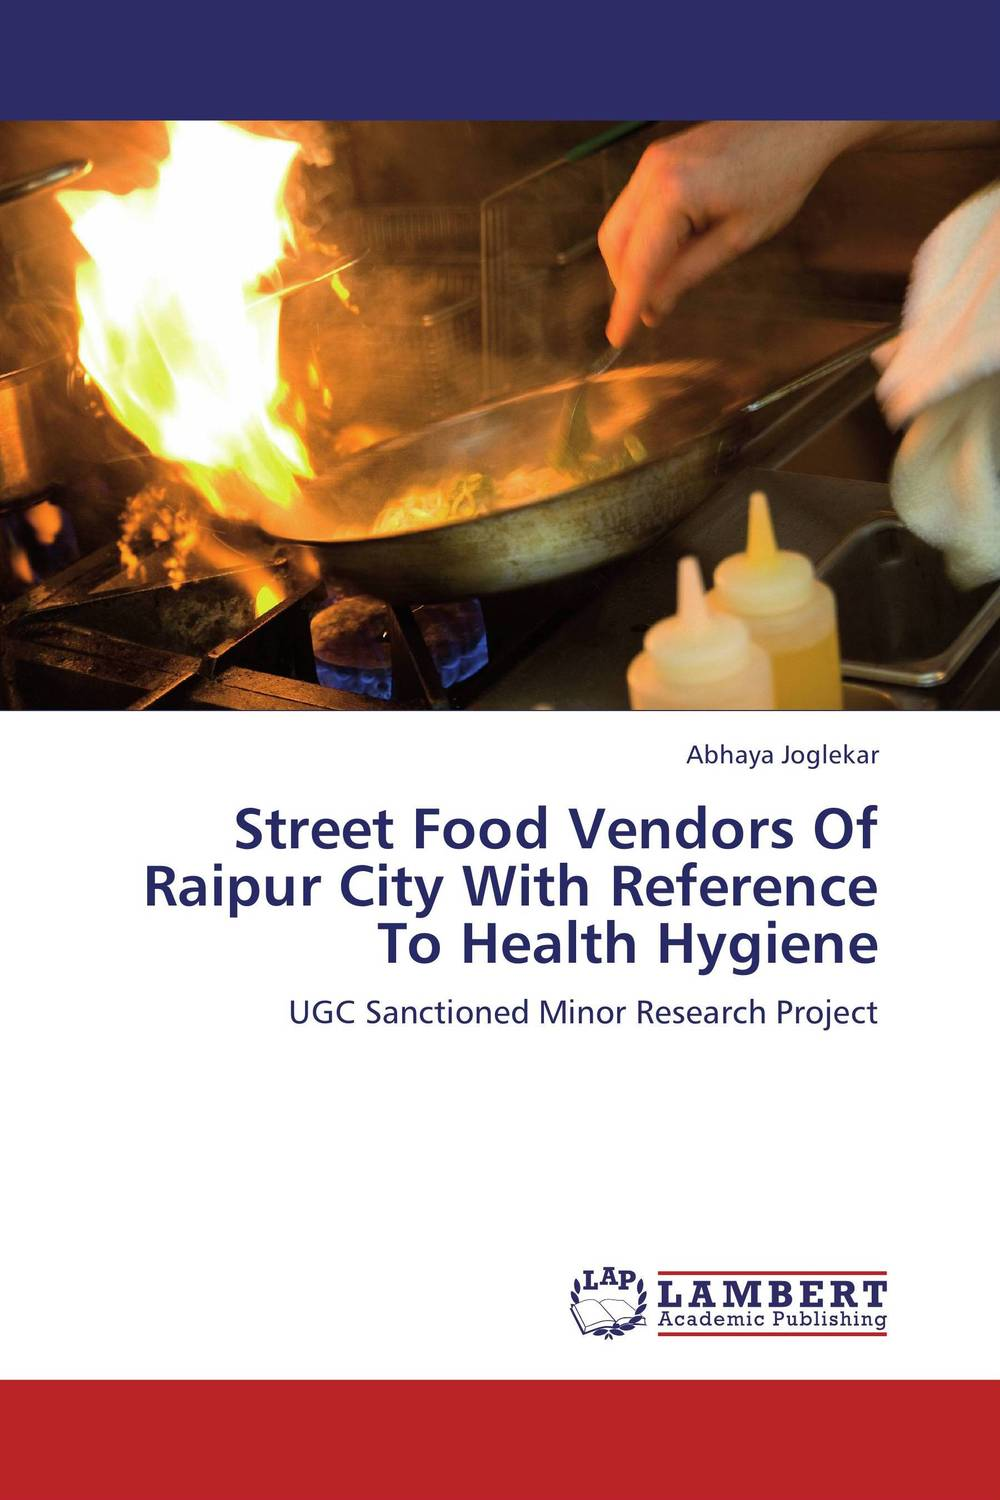 Street Food Vendors Of Raipur City With Reference To Health Hygiene street food vendors